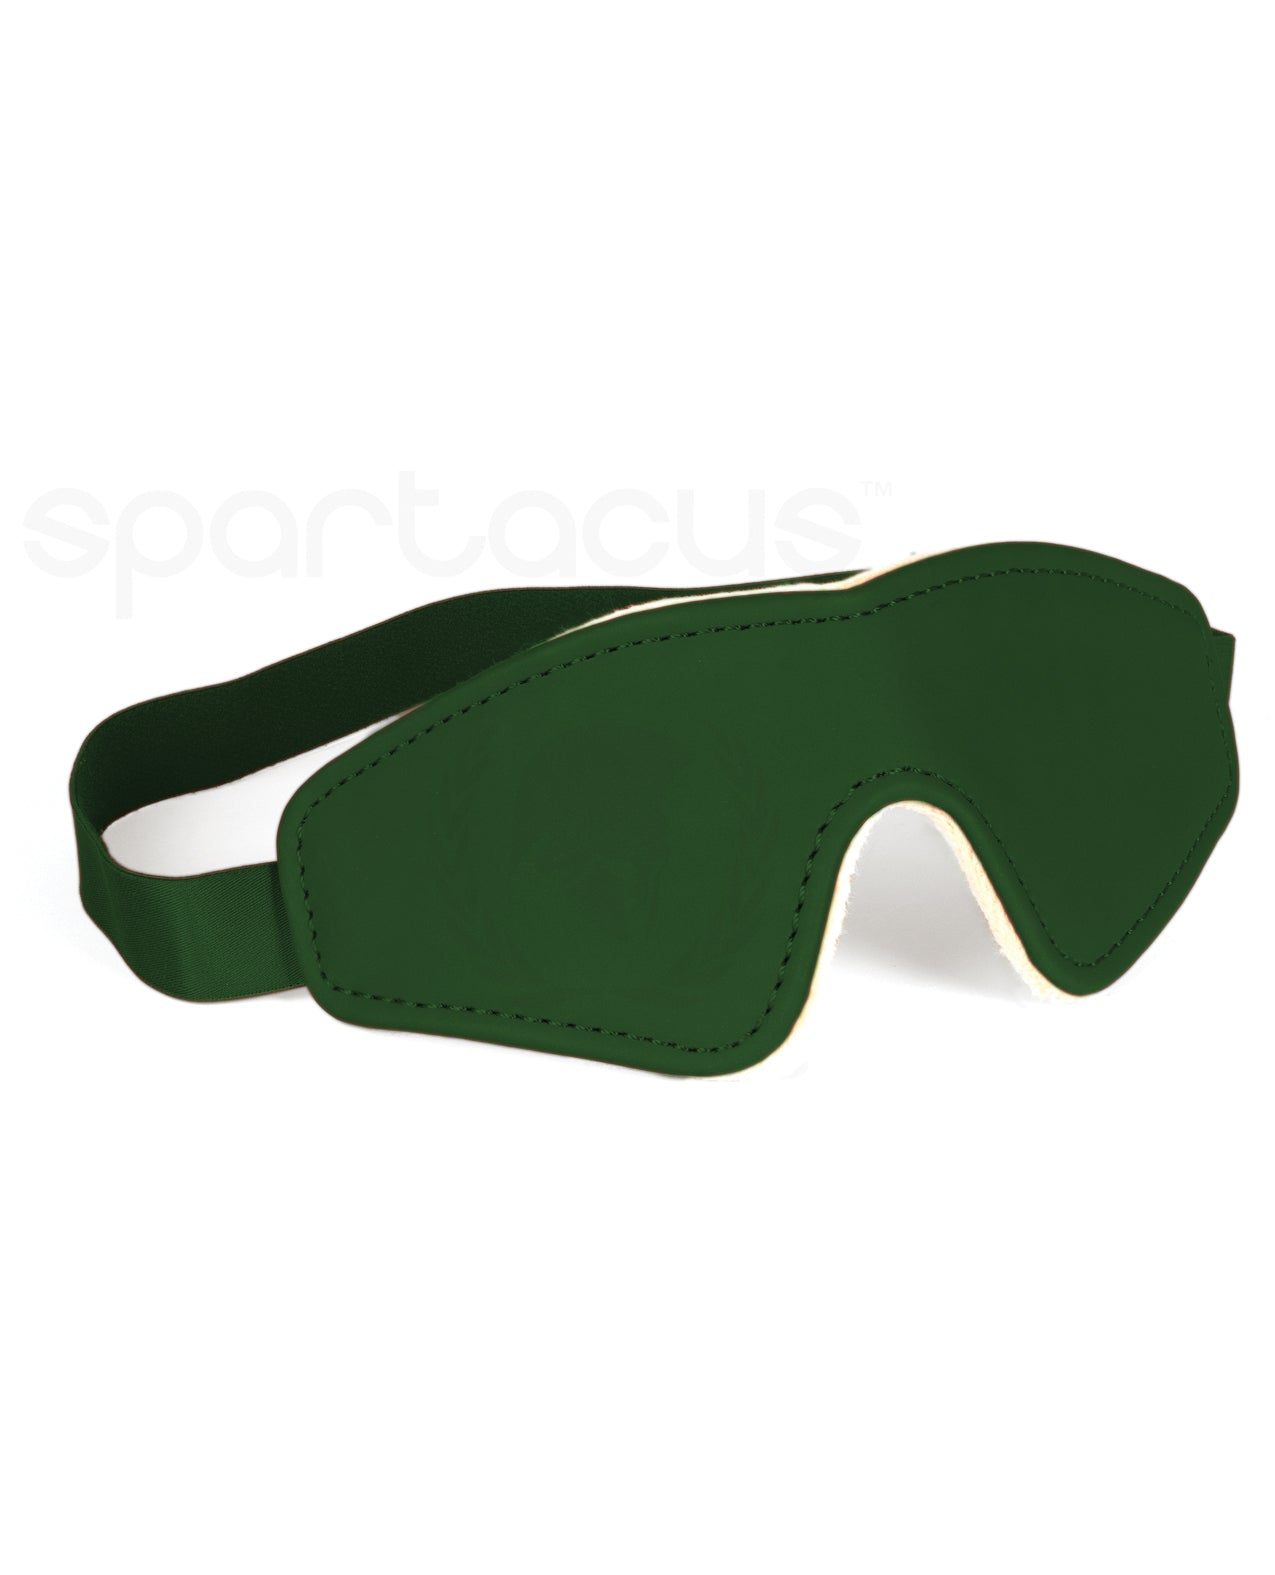 Spartacus PU Blindfold w/Plush Lining - Green